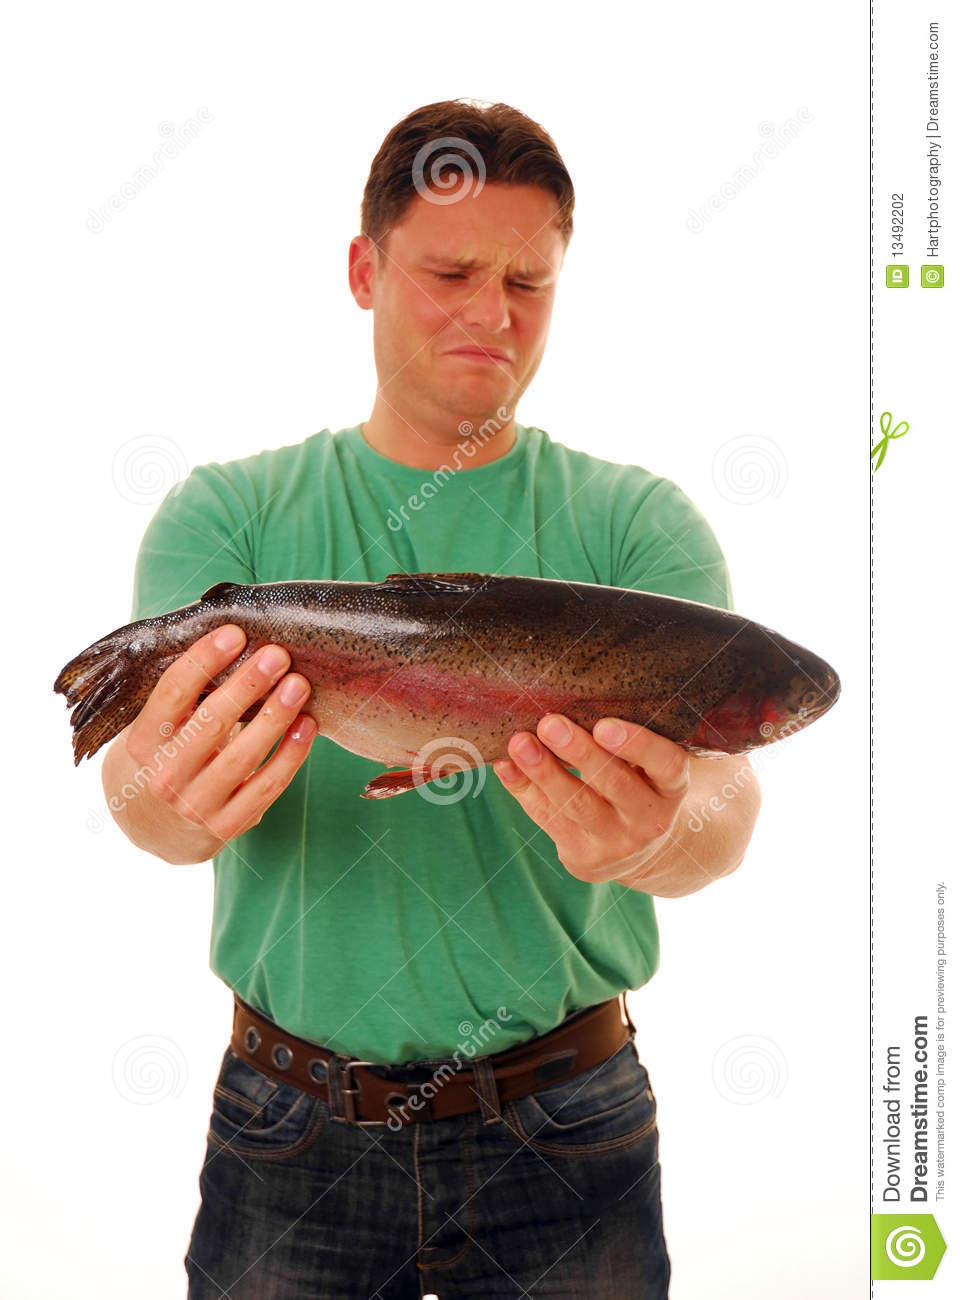 Stinky fish stock photography image 13492202 for Stinky fish in a can